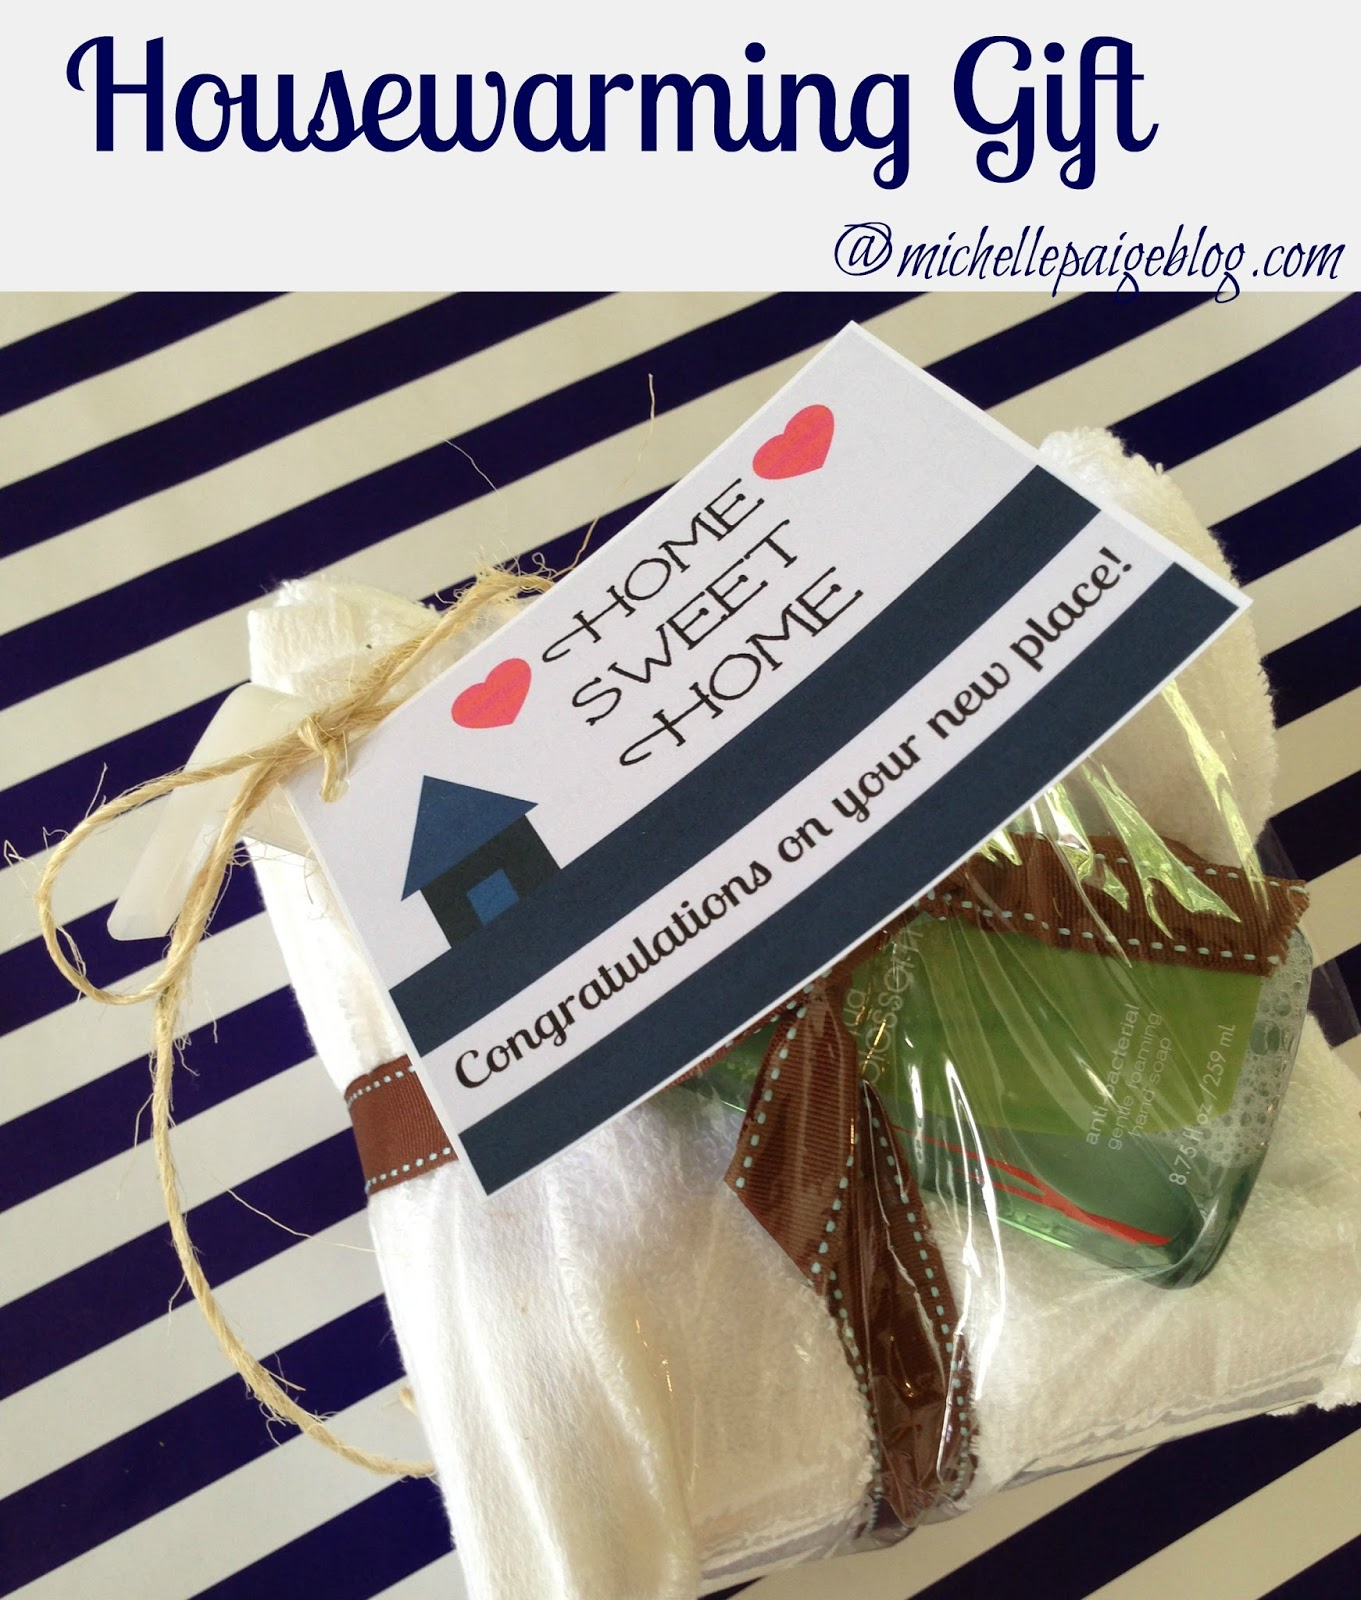 What Is A Nice Housewarming Gift Michelle Paige Blogs Housewarming Gifts And Printable Tag